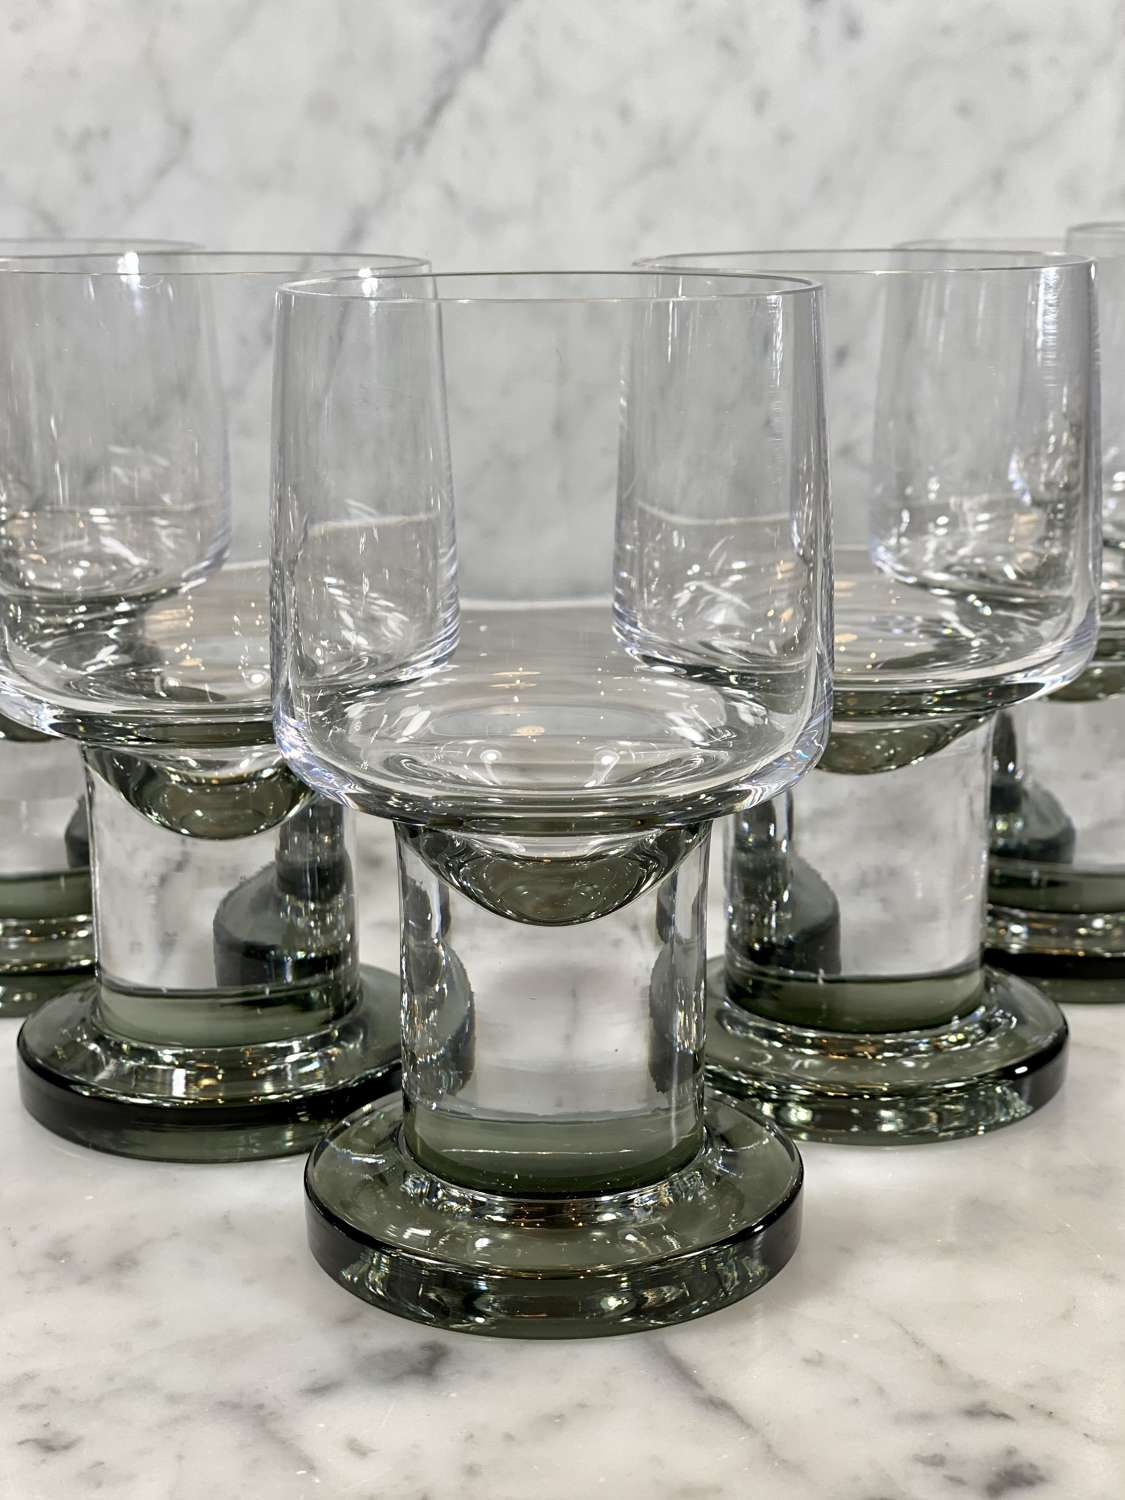 Superb set of French smoked crystal giant goblets